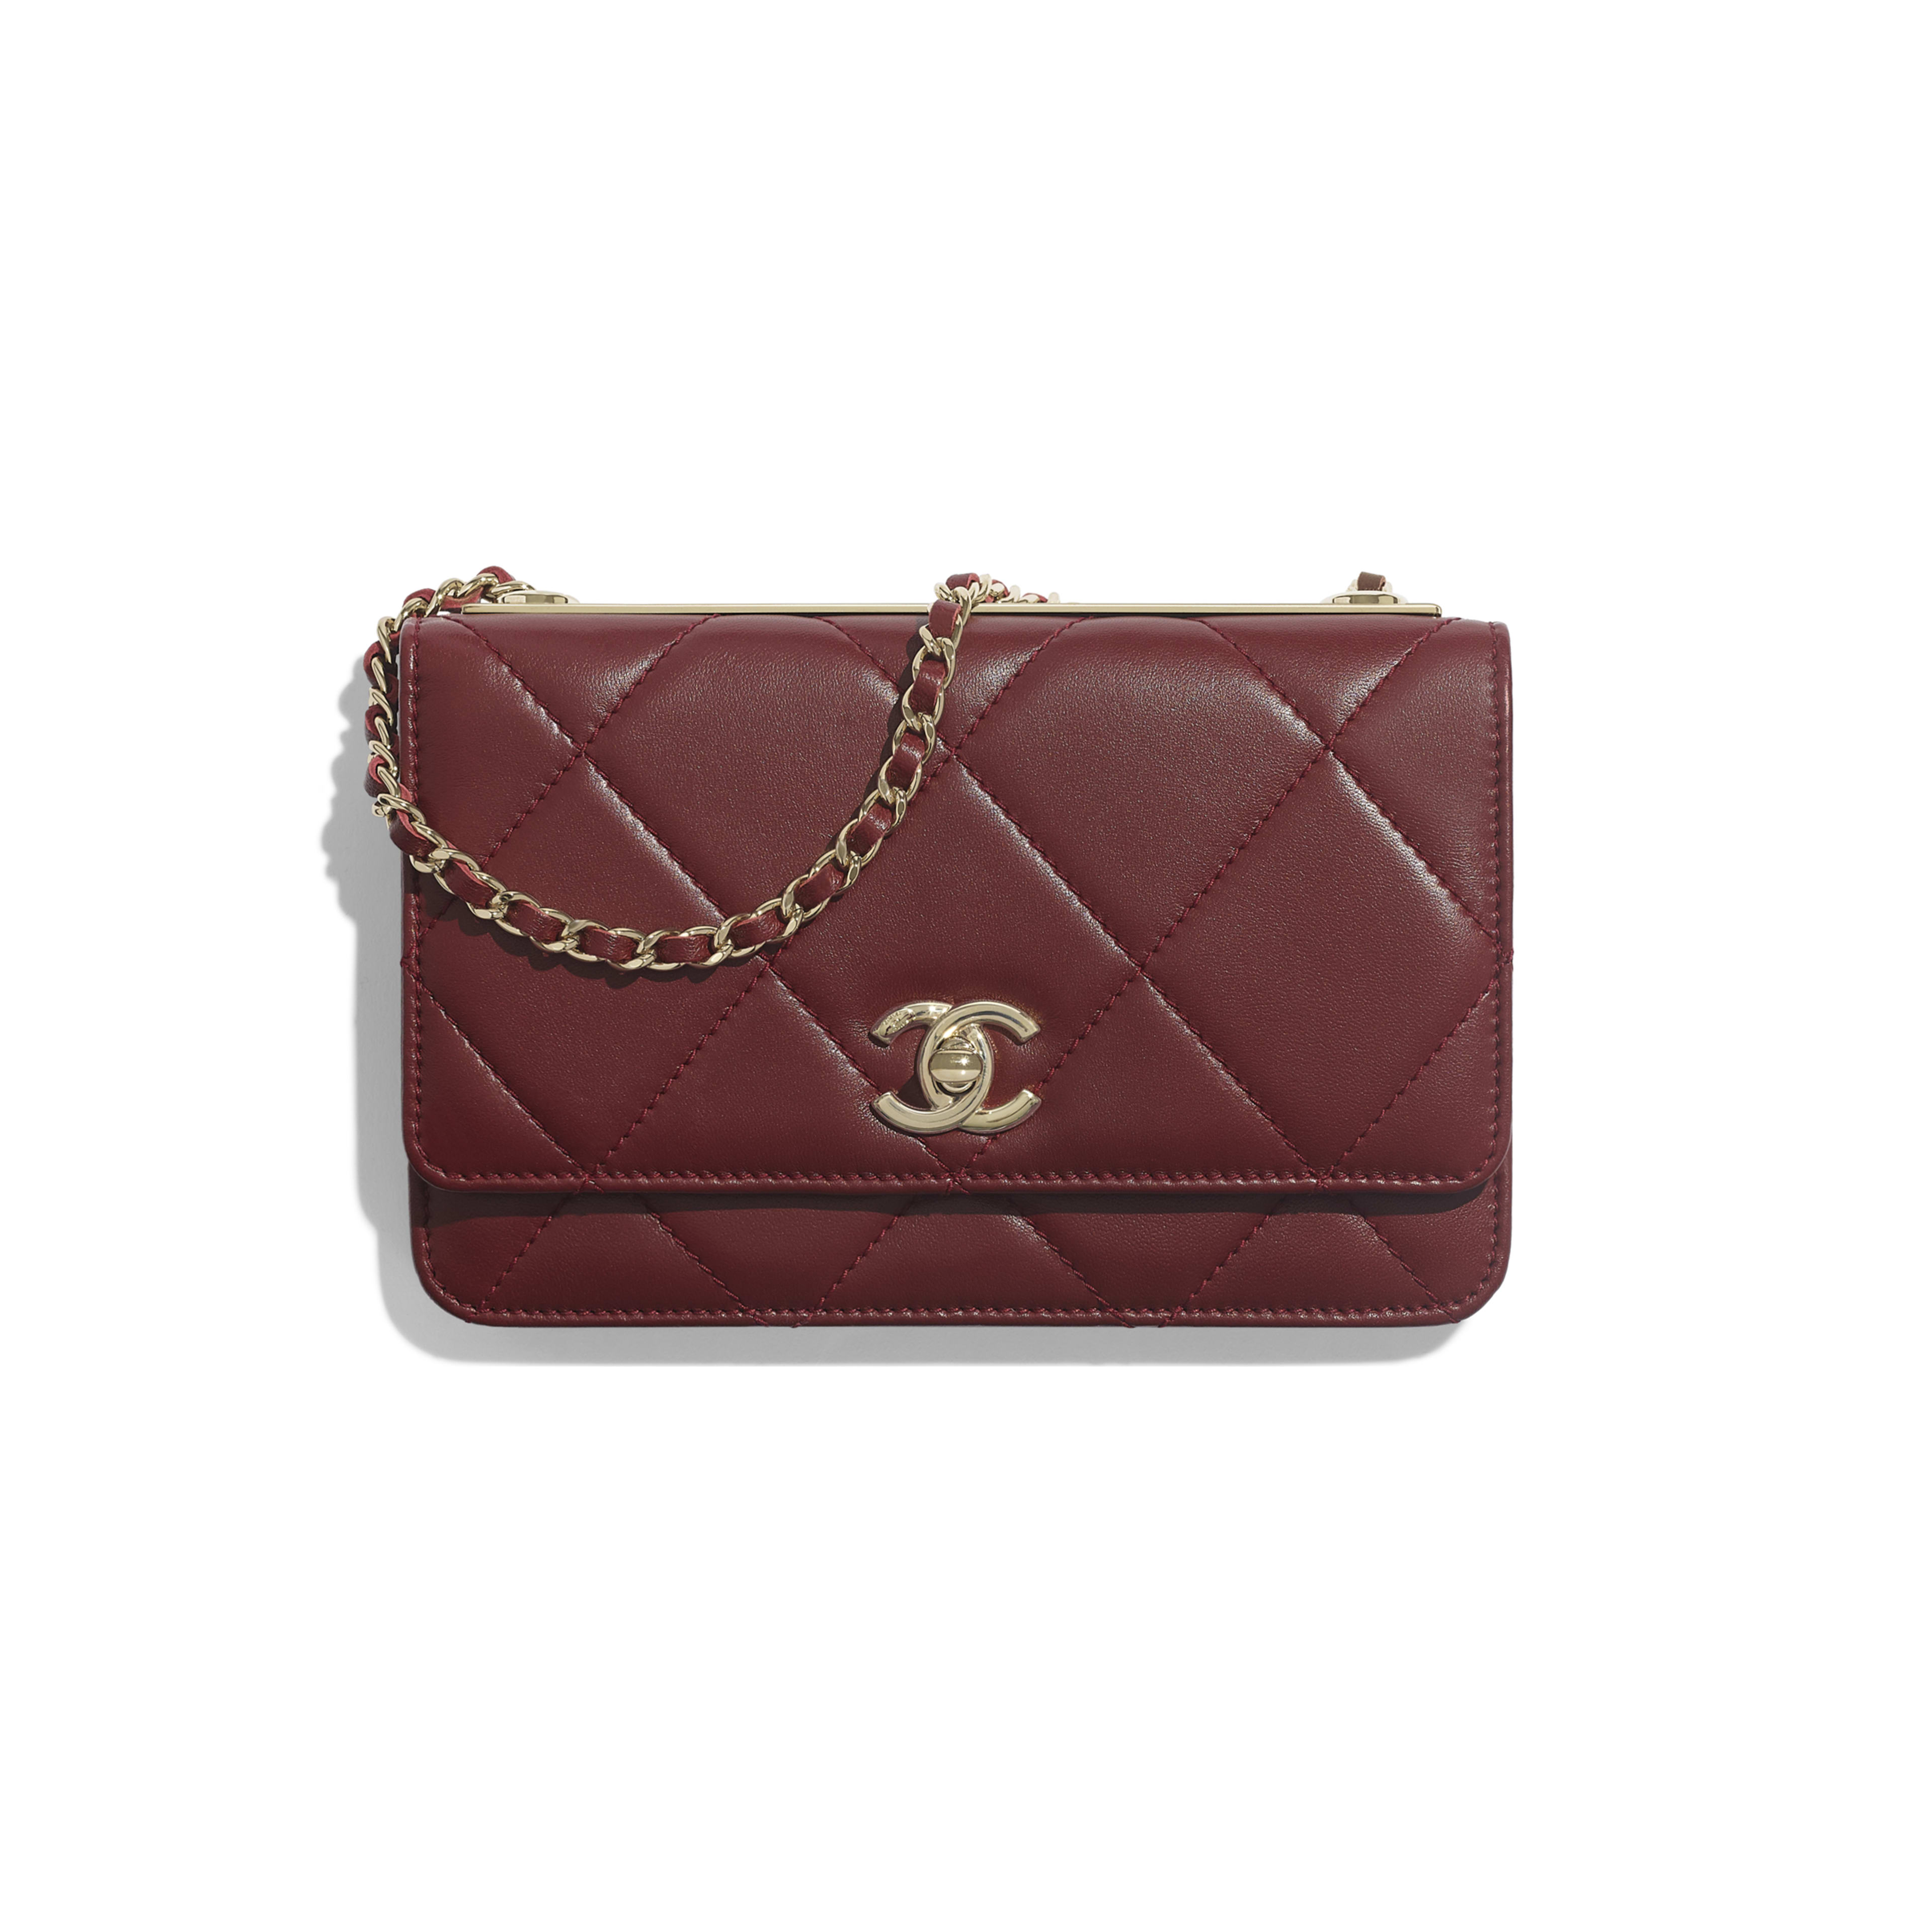 Wallet on Chain - Burgundy - Lambskin & Gold-Tone Metal - Default view - see full sized version